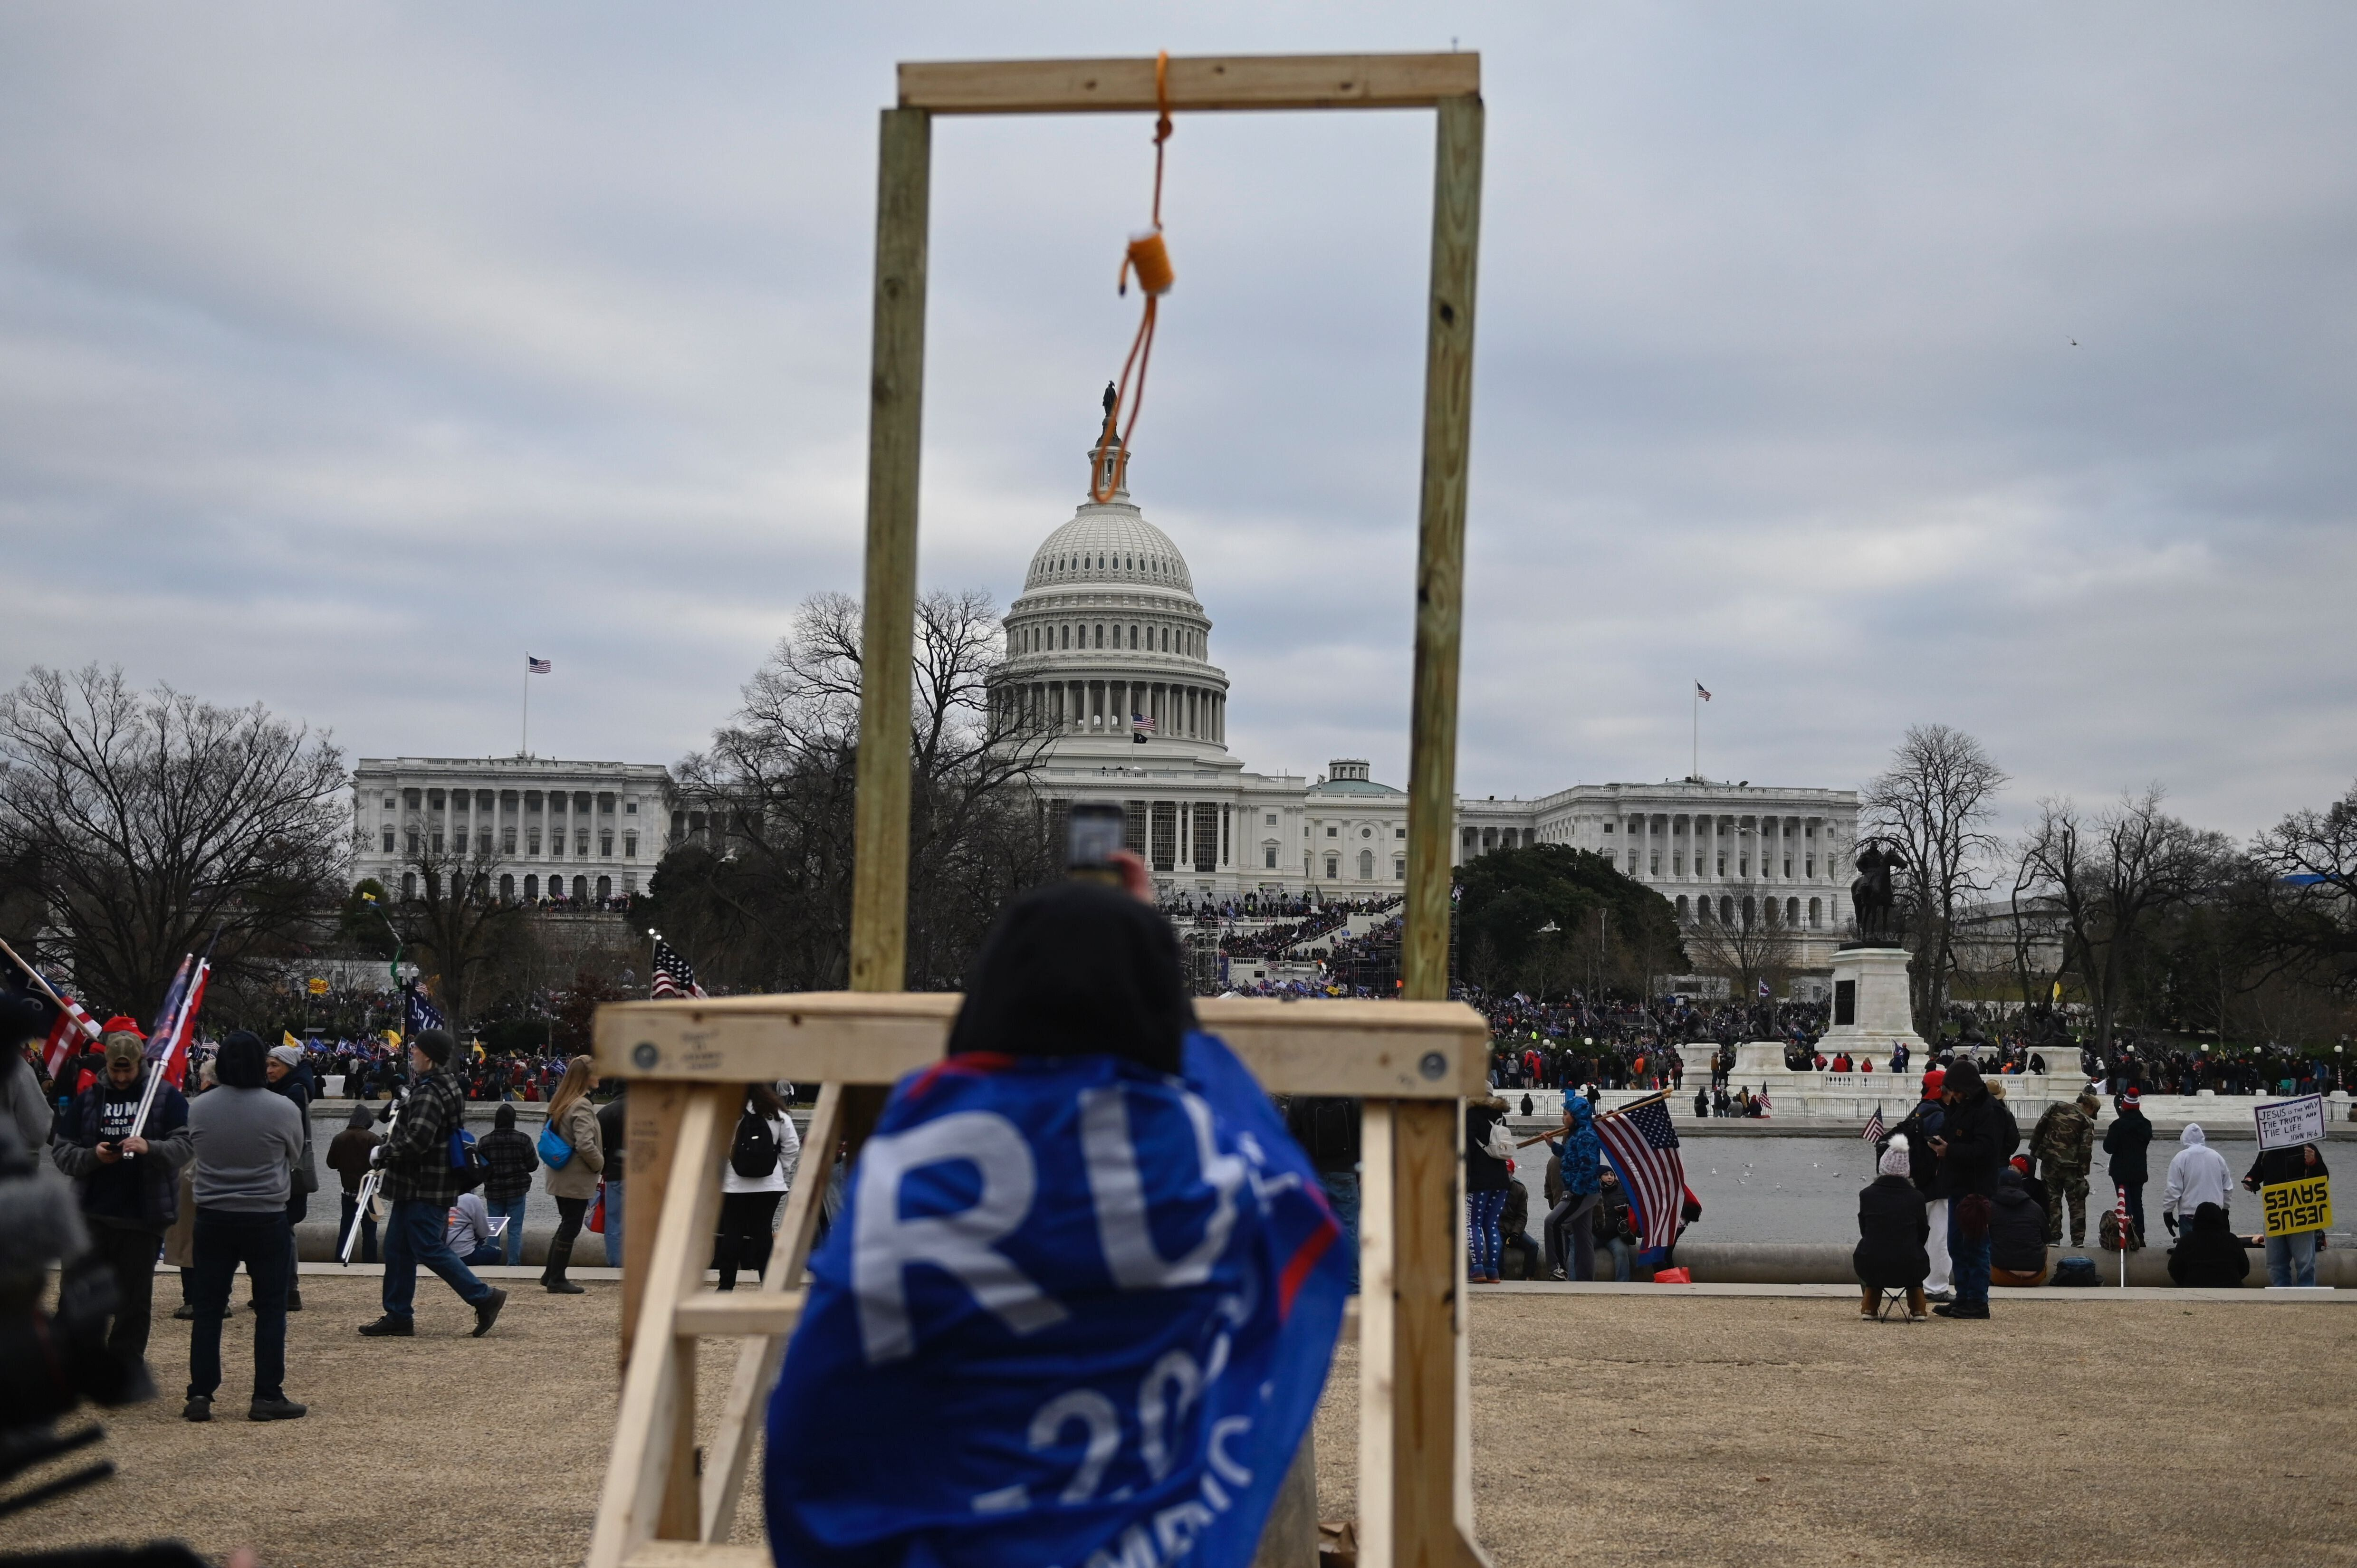 Supporters of then-President Donald Trump erected a gallows in front of the U.S. Capitol on Jan. 6, 2021, breached security a